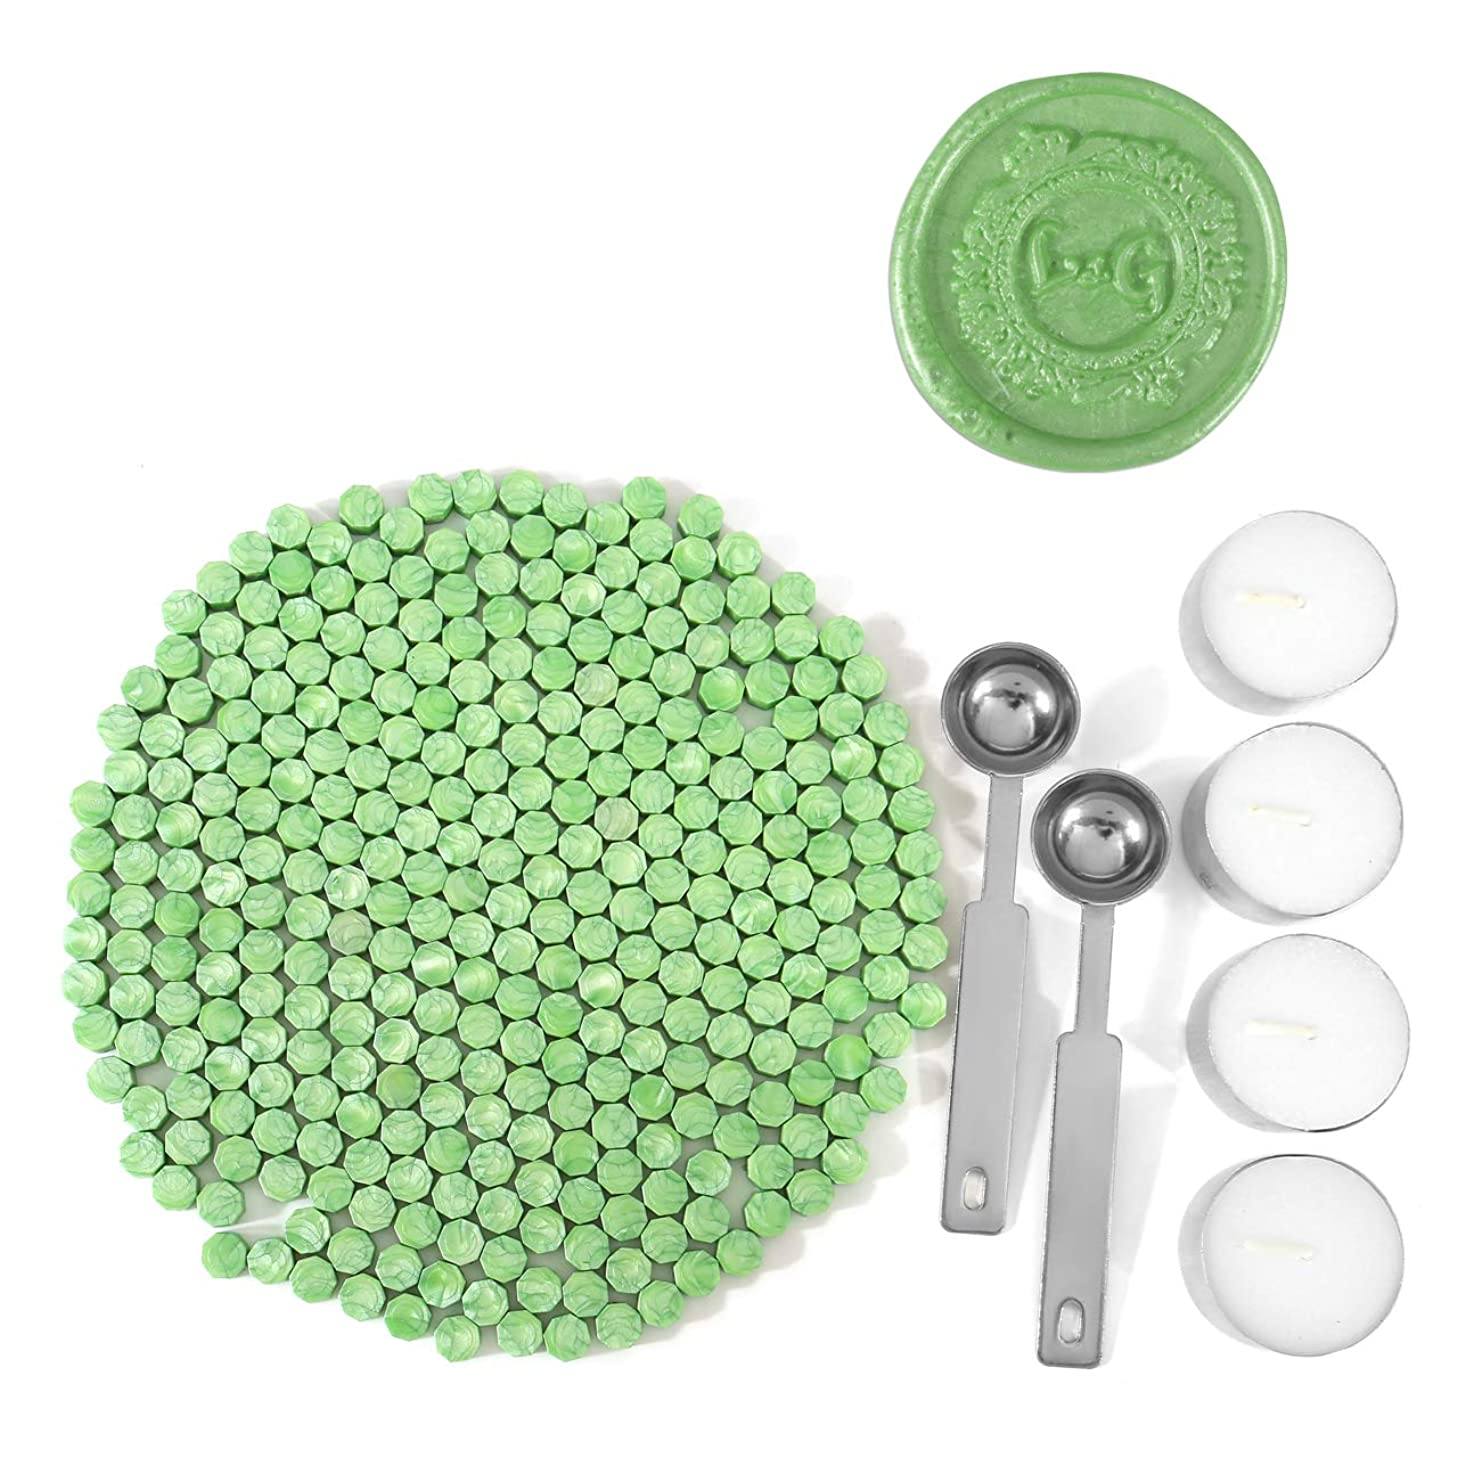 Green Wax Seal Beads, Yoption 300 Pieces Octagon Sealing Wax Sticks Beads with 4 Candles and 2 Melting Spoons for Seal Stamp (Green)